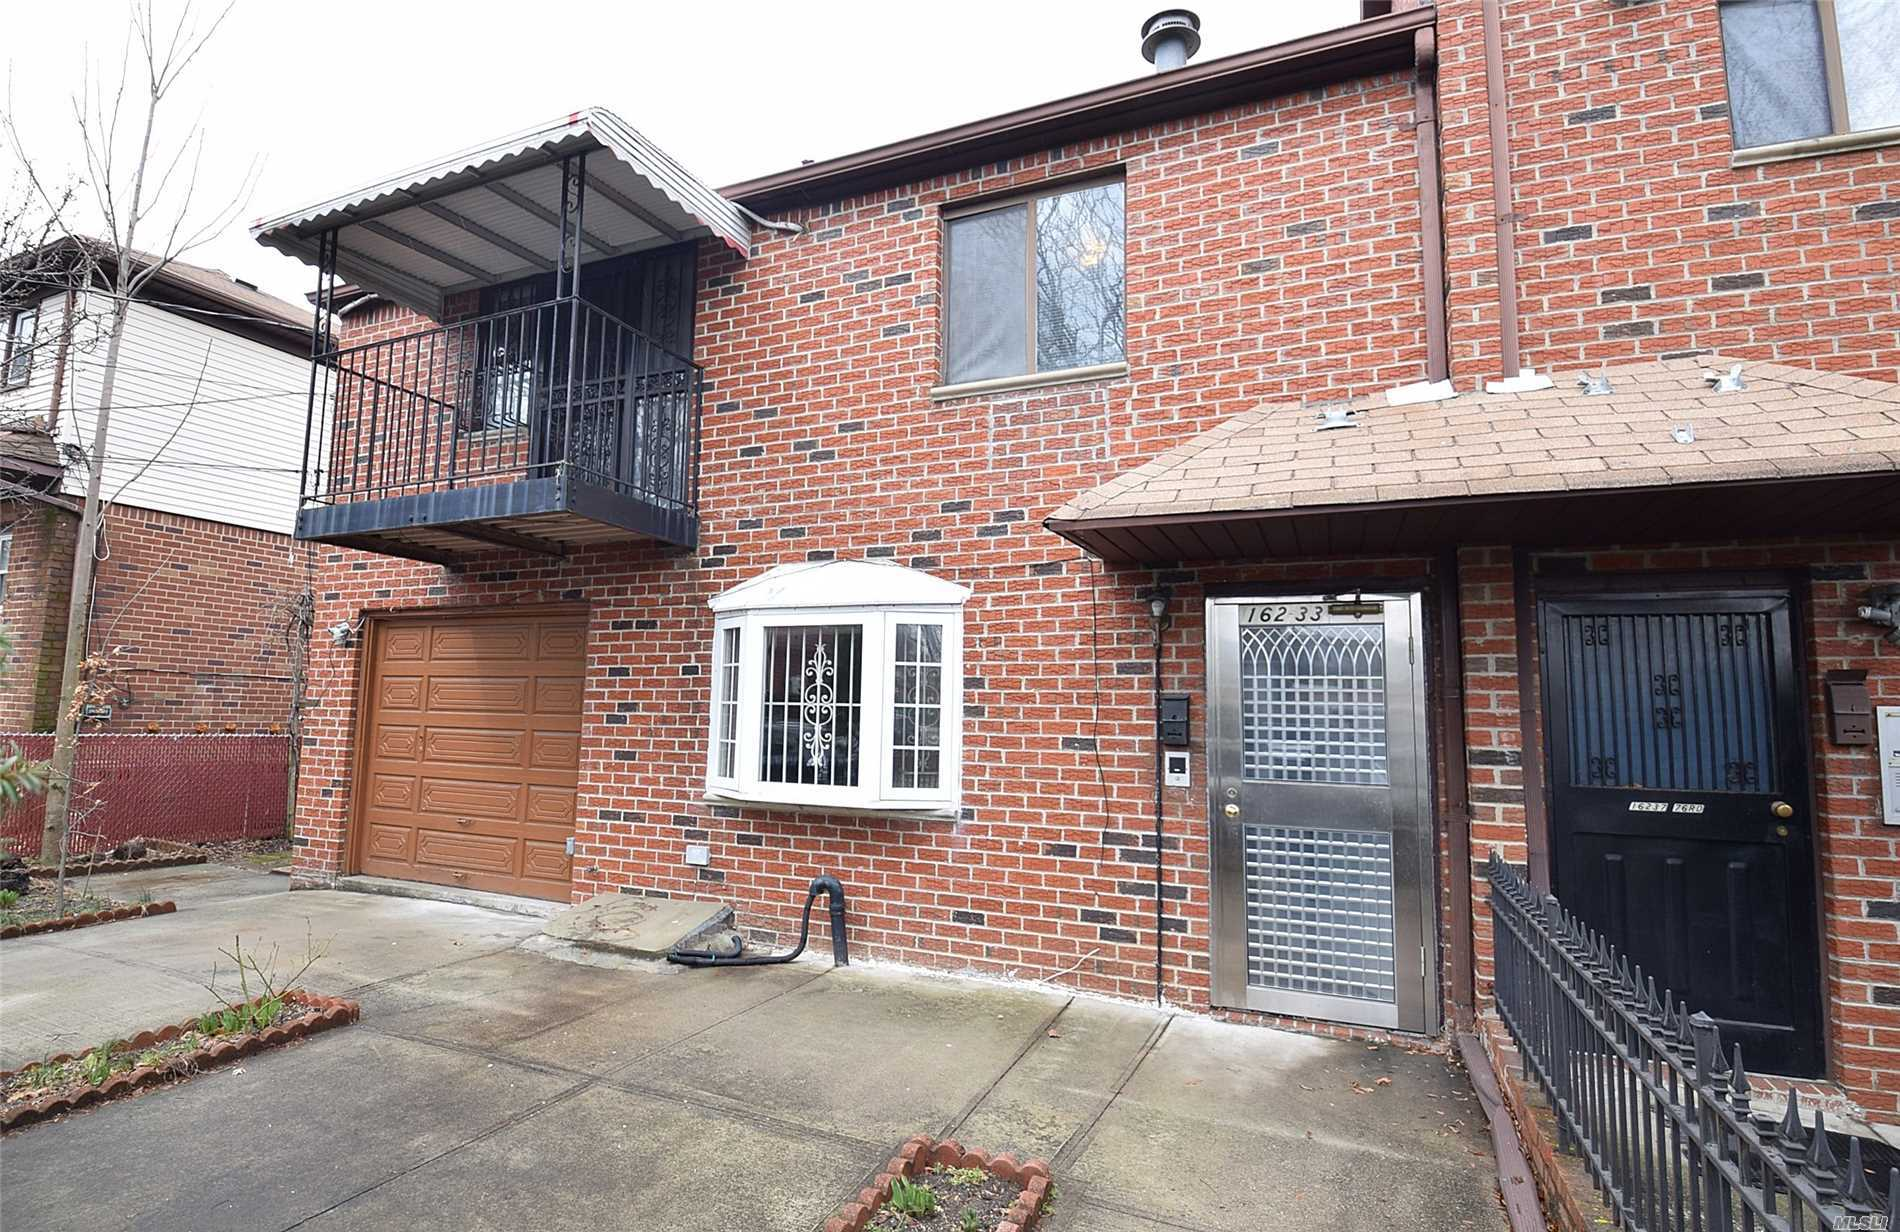 Property for sale at 162-33 76 Road, Fresh Meadows NY 11366, Fresh Meadows,  New York 11366